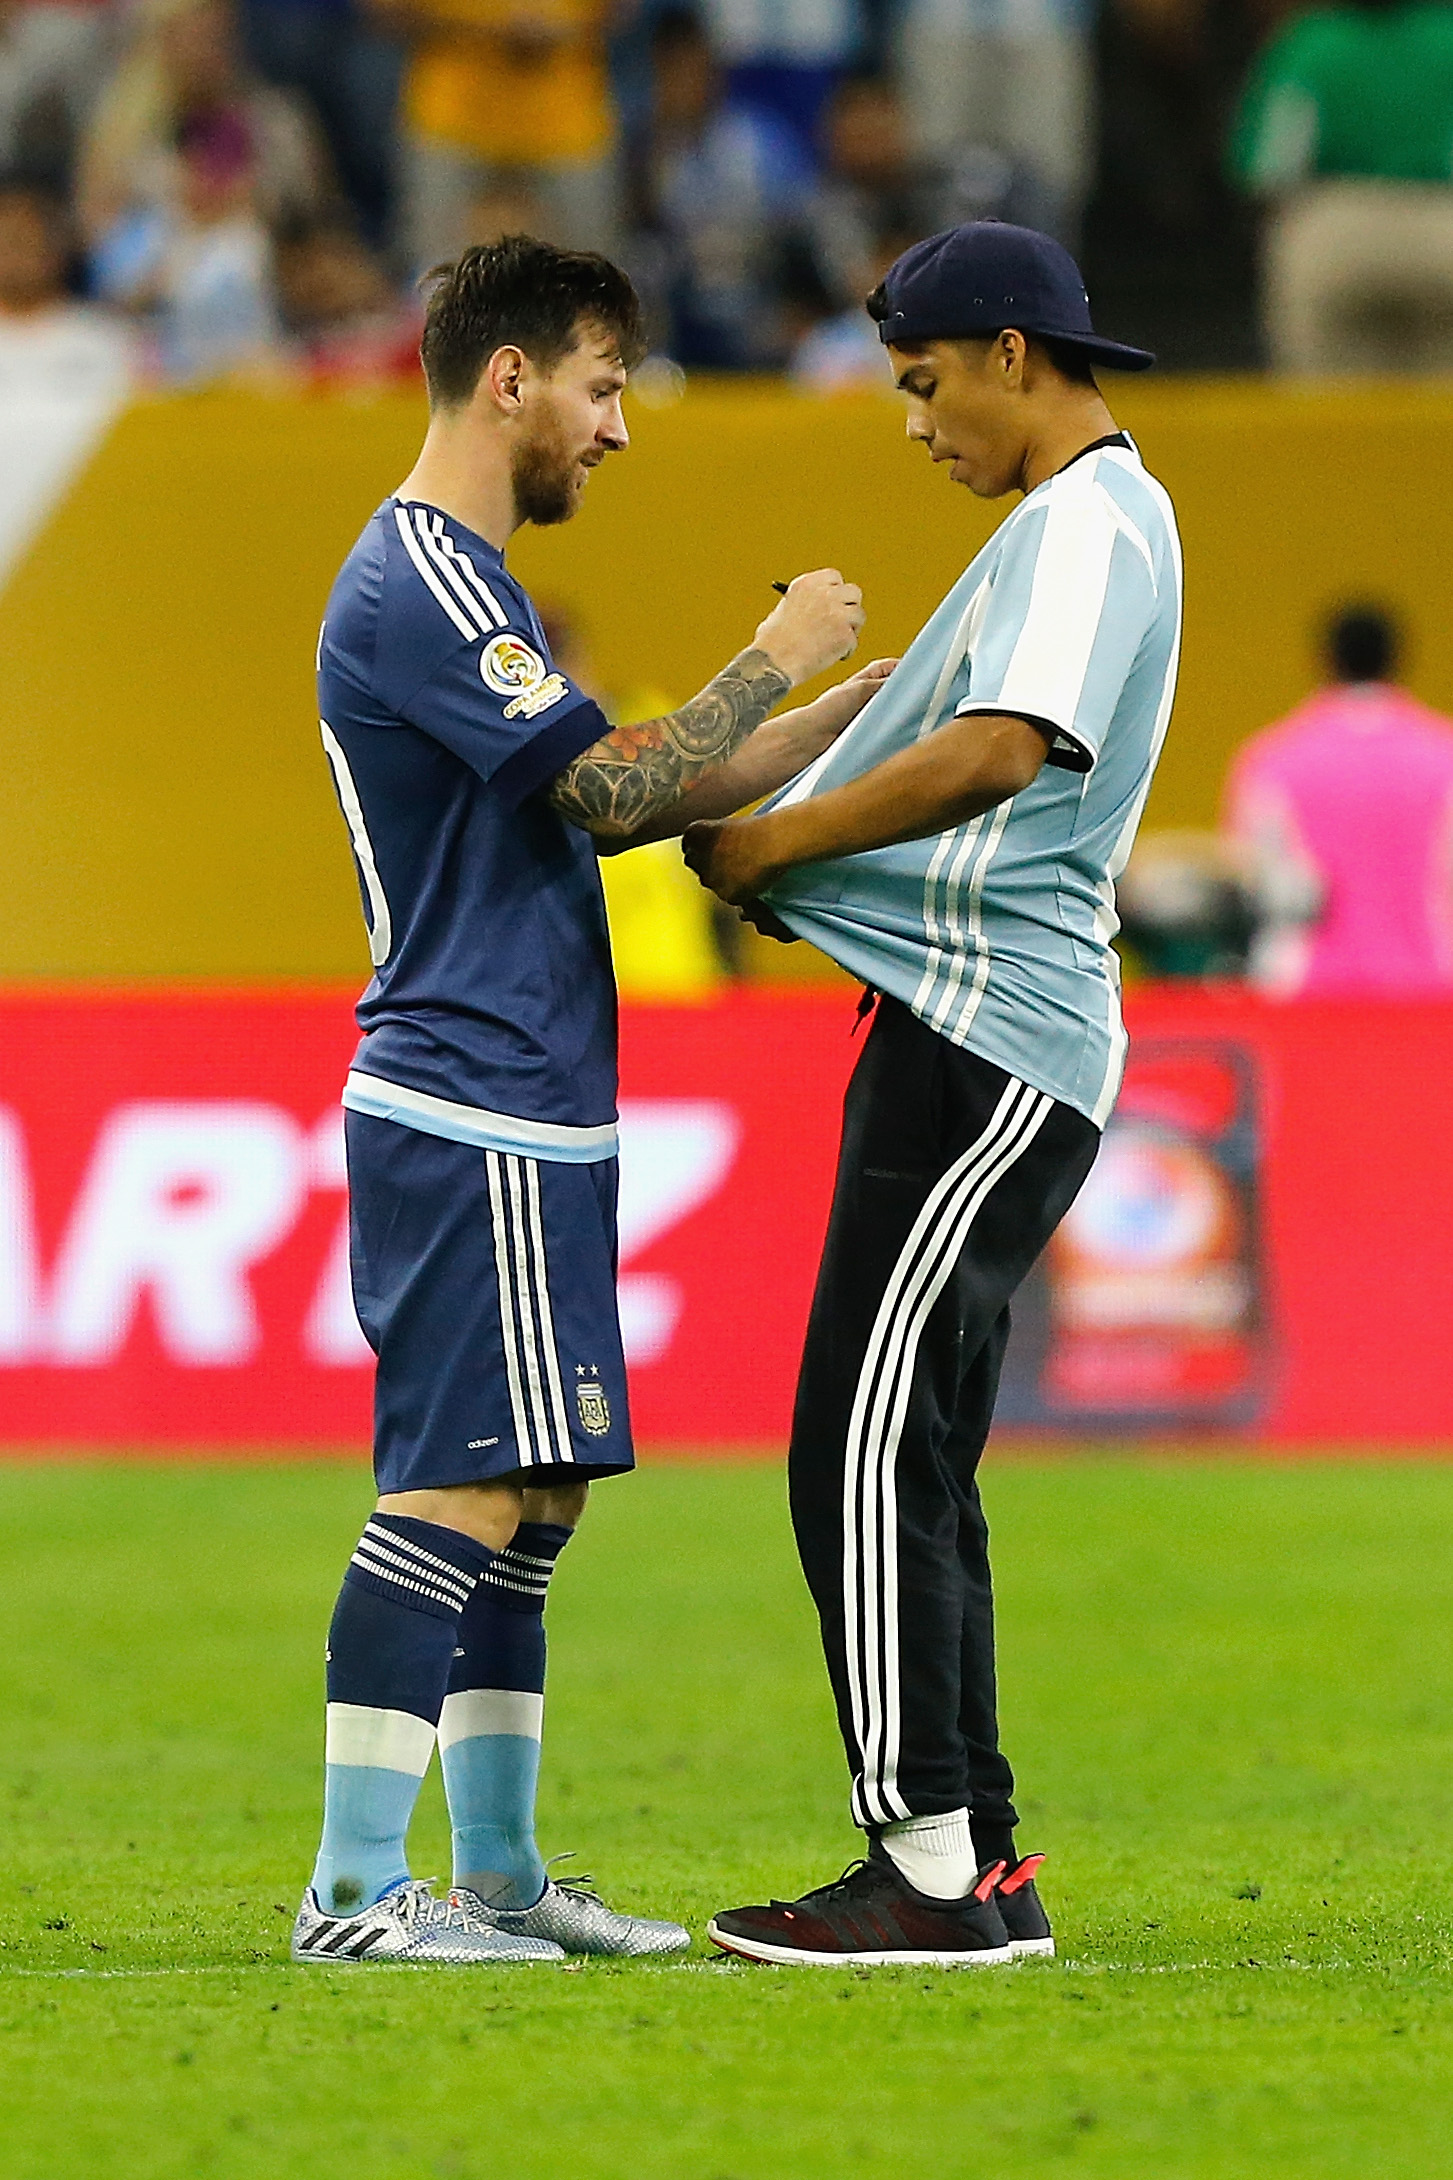 HOUSTON, TX - JUNE 21: Lionel Messi #10 of Argentina autographs the shirt of a fan who ran onto the field prior to the start of the second half during a 2016 Copa America Centenario Semifinal match between Argentina and the United States at NRG Stadium on June 21, 2016 in Houston, Texas. Bob Levey/Getty Images/AFP